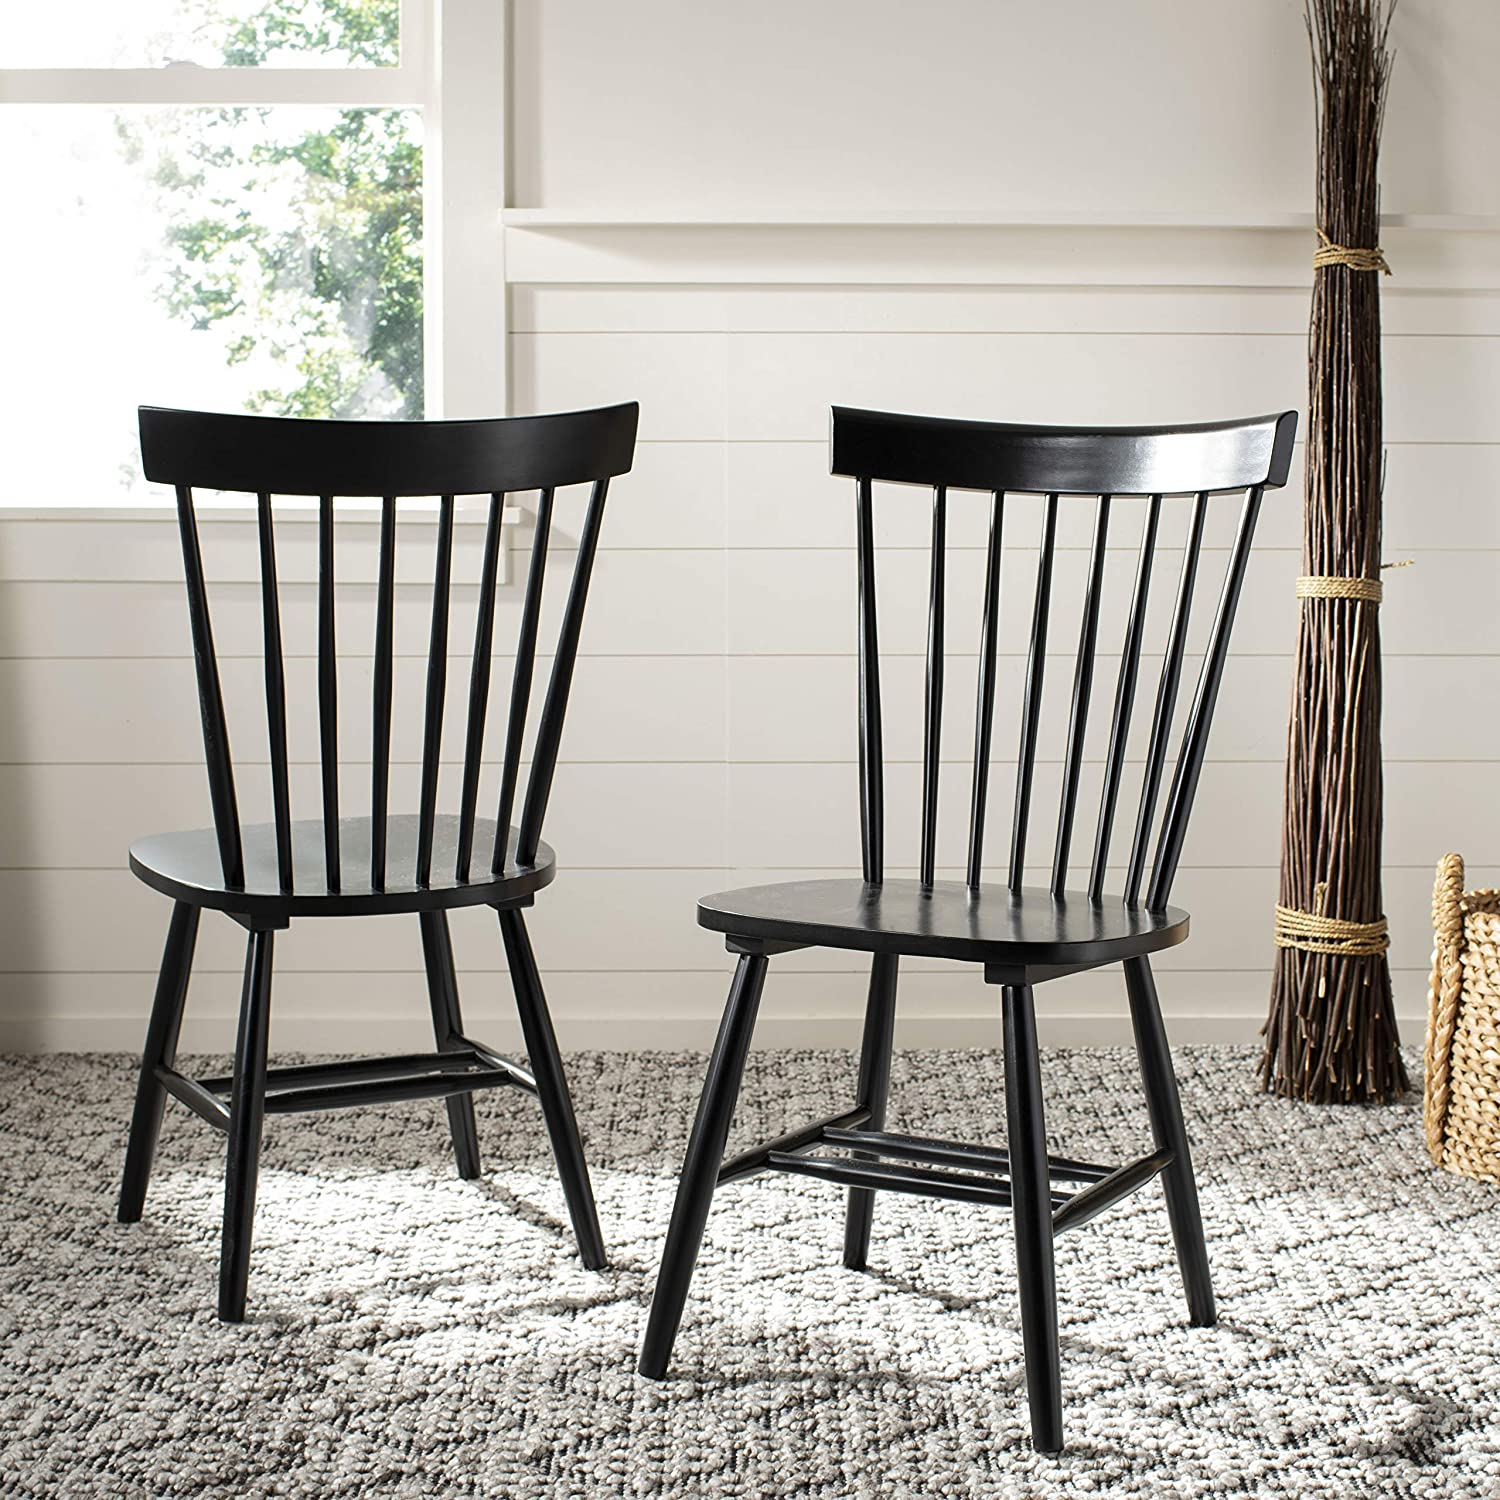 Safavieh American Homes Collection Parker Country Farmhouse Black Spindle Side Chair (Set of 2)